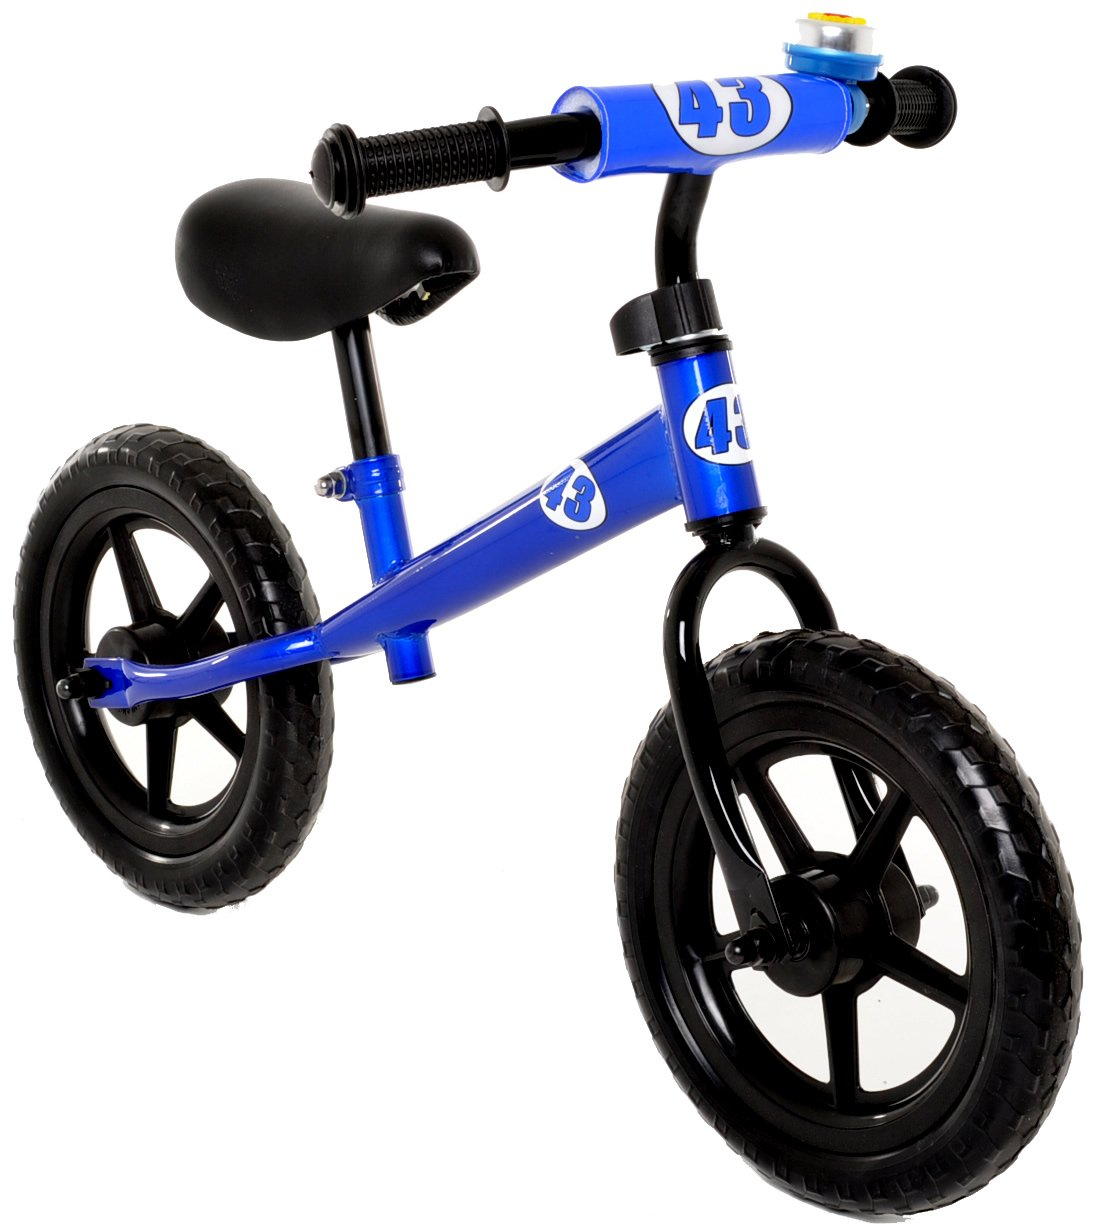 Top 11 Best Balance Bikes for Toddlers (2019 Reviews) 11